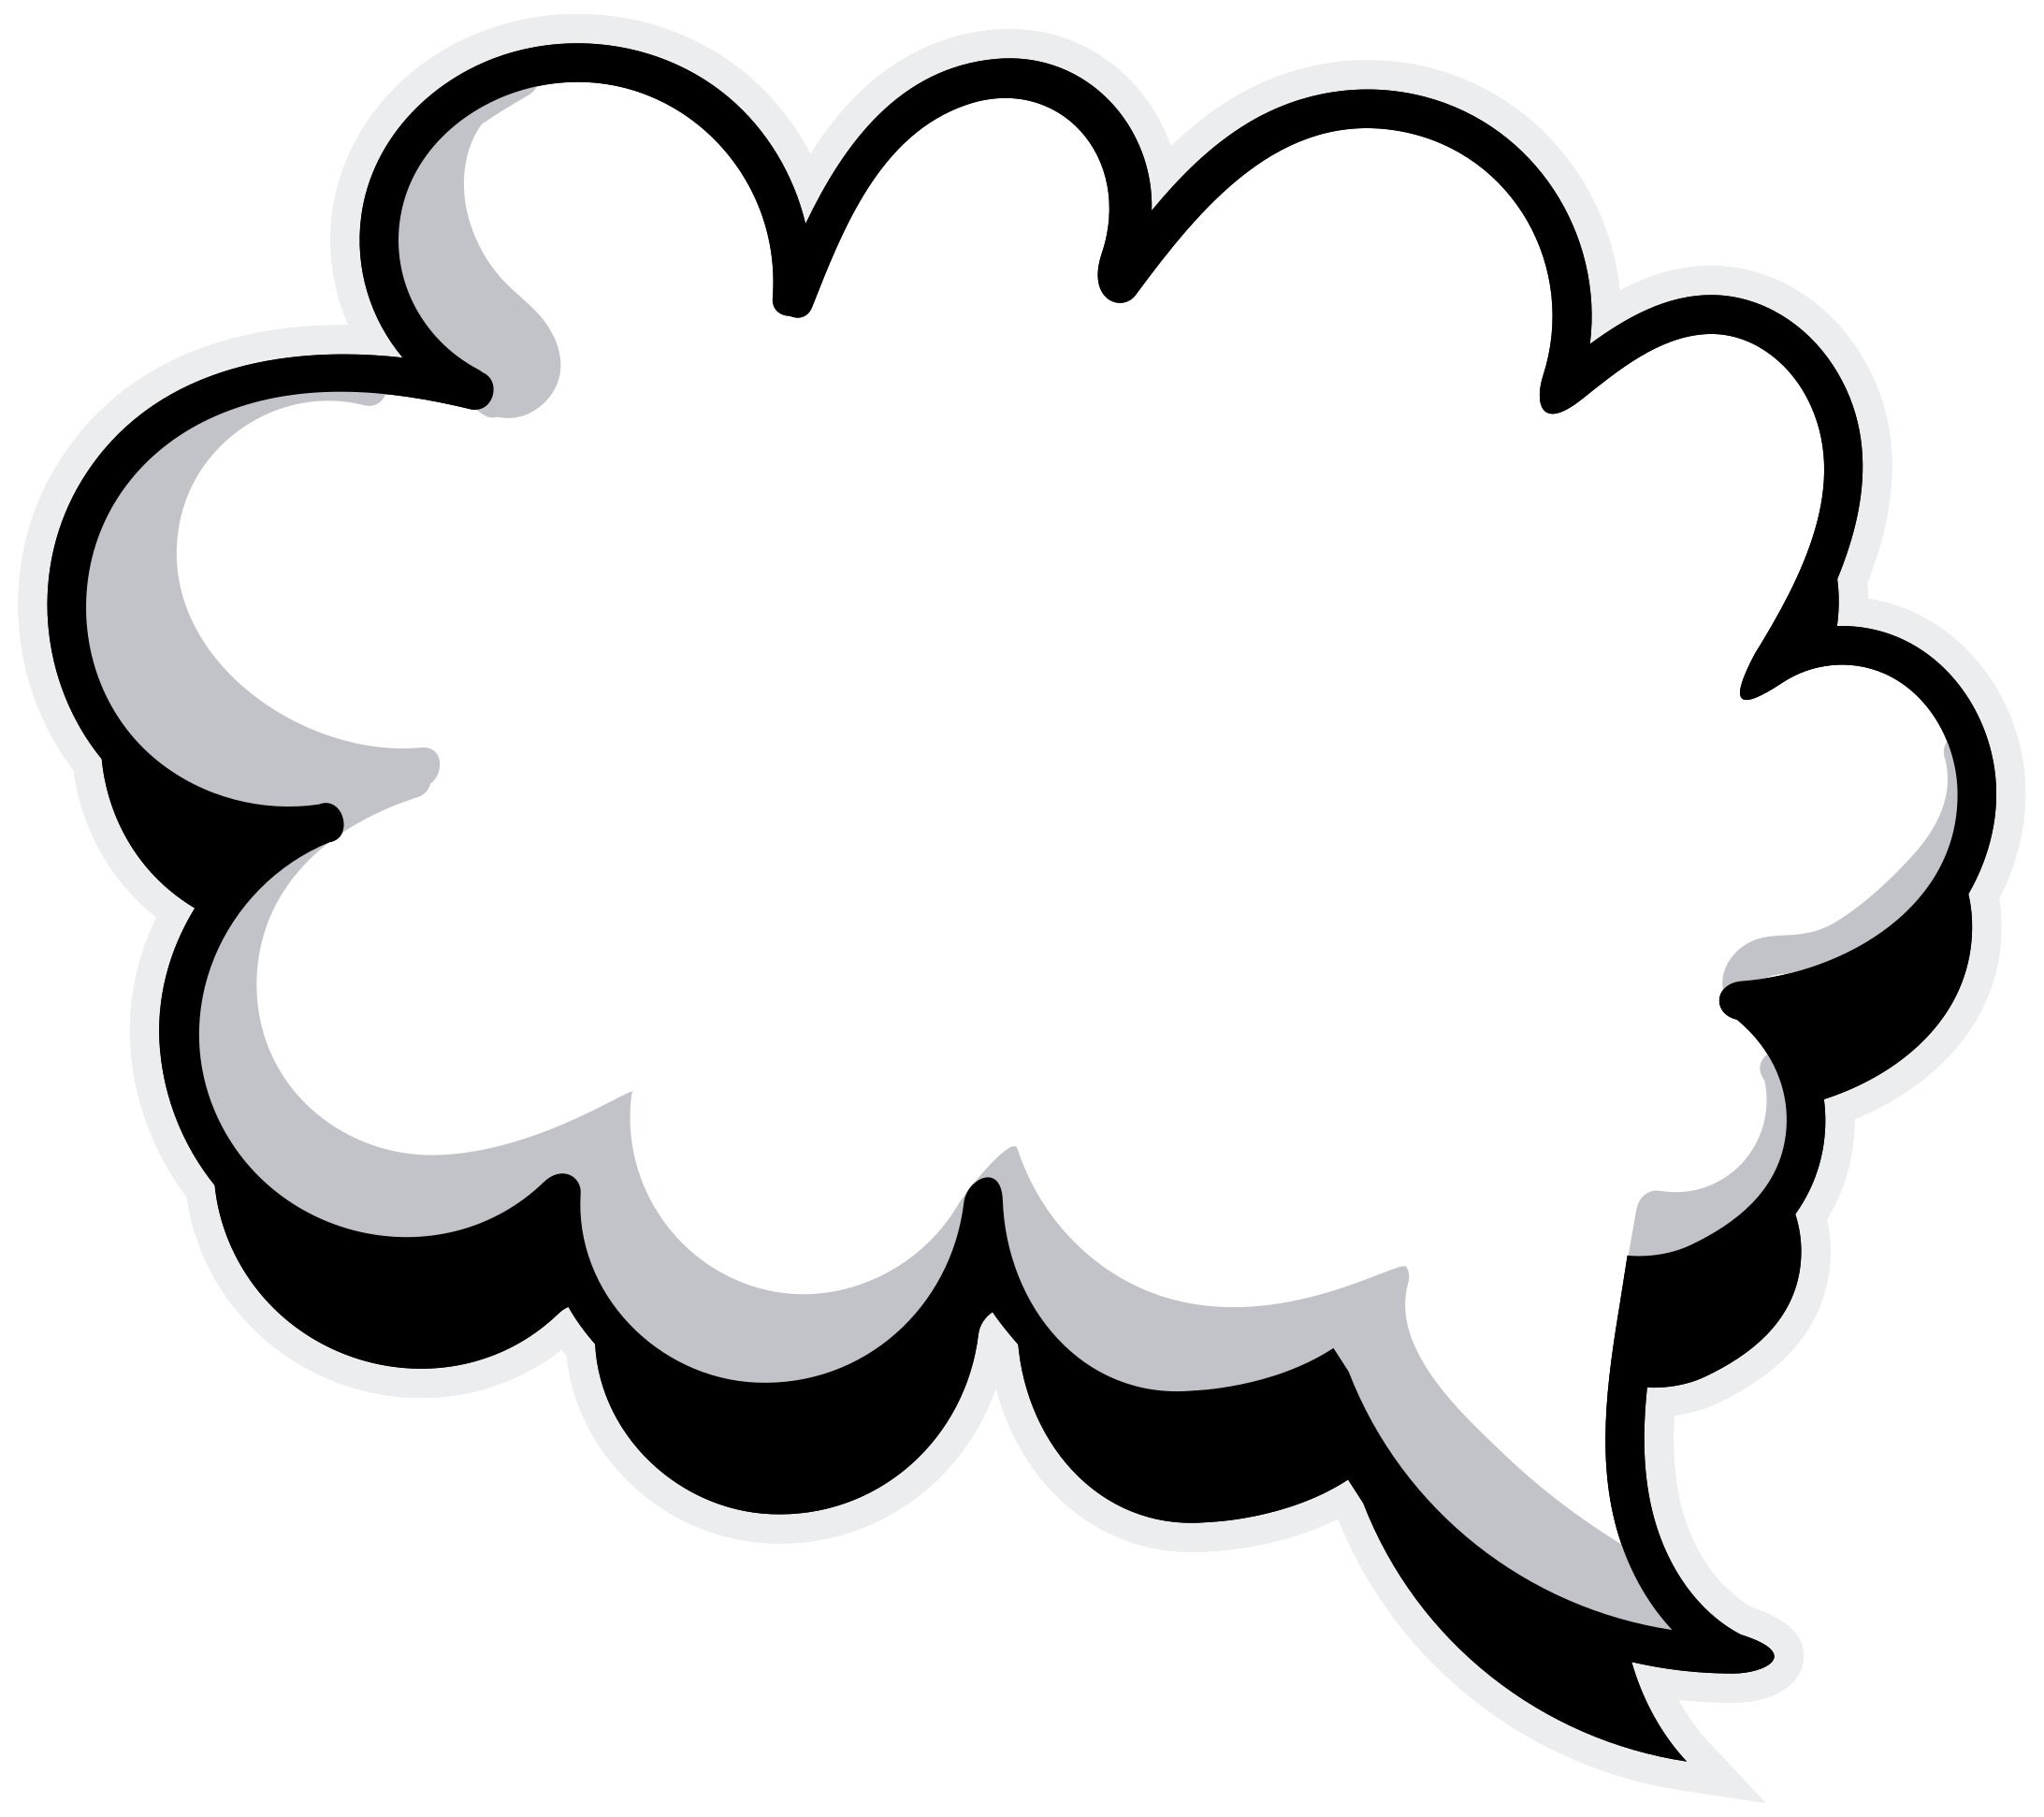 Free Speech bubble 1195456 PNG with Transparent Background